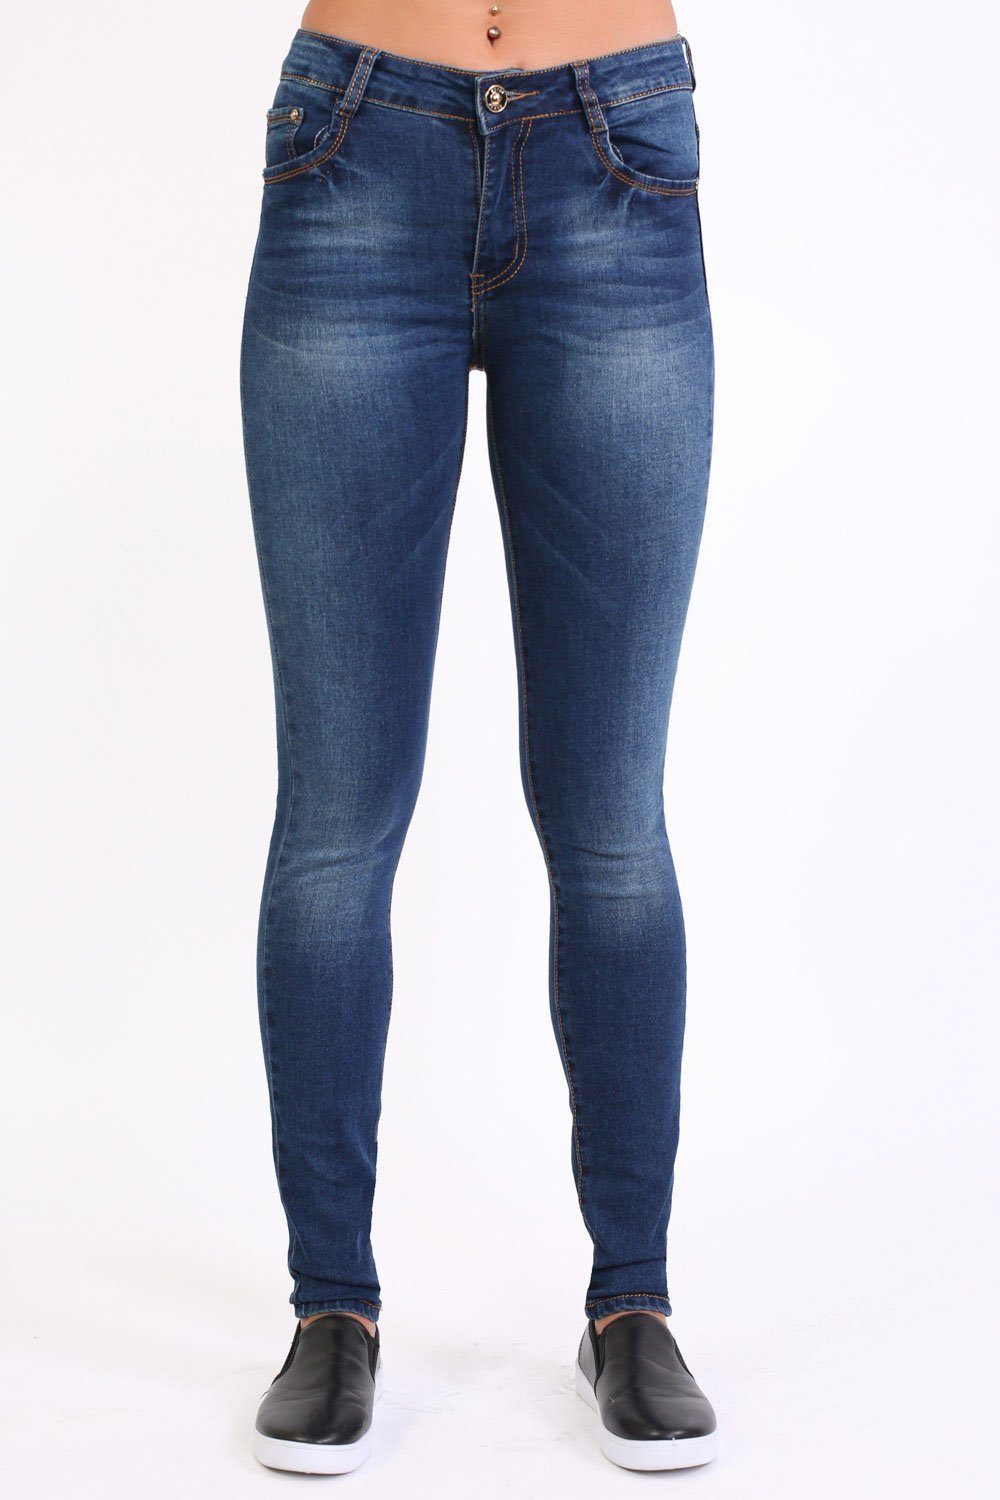 Sandblast Effect Skinny Jeans in Dark Denim 0